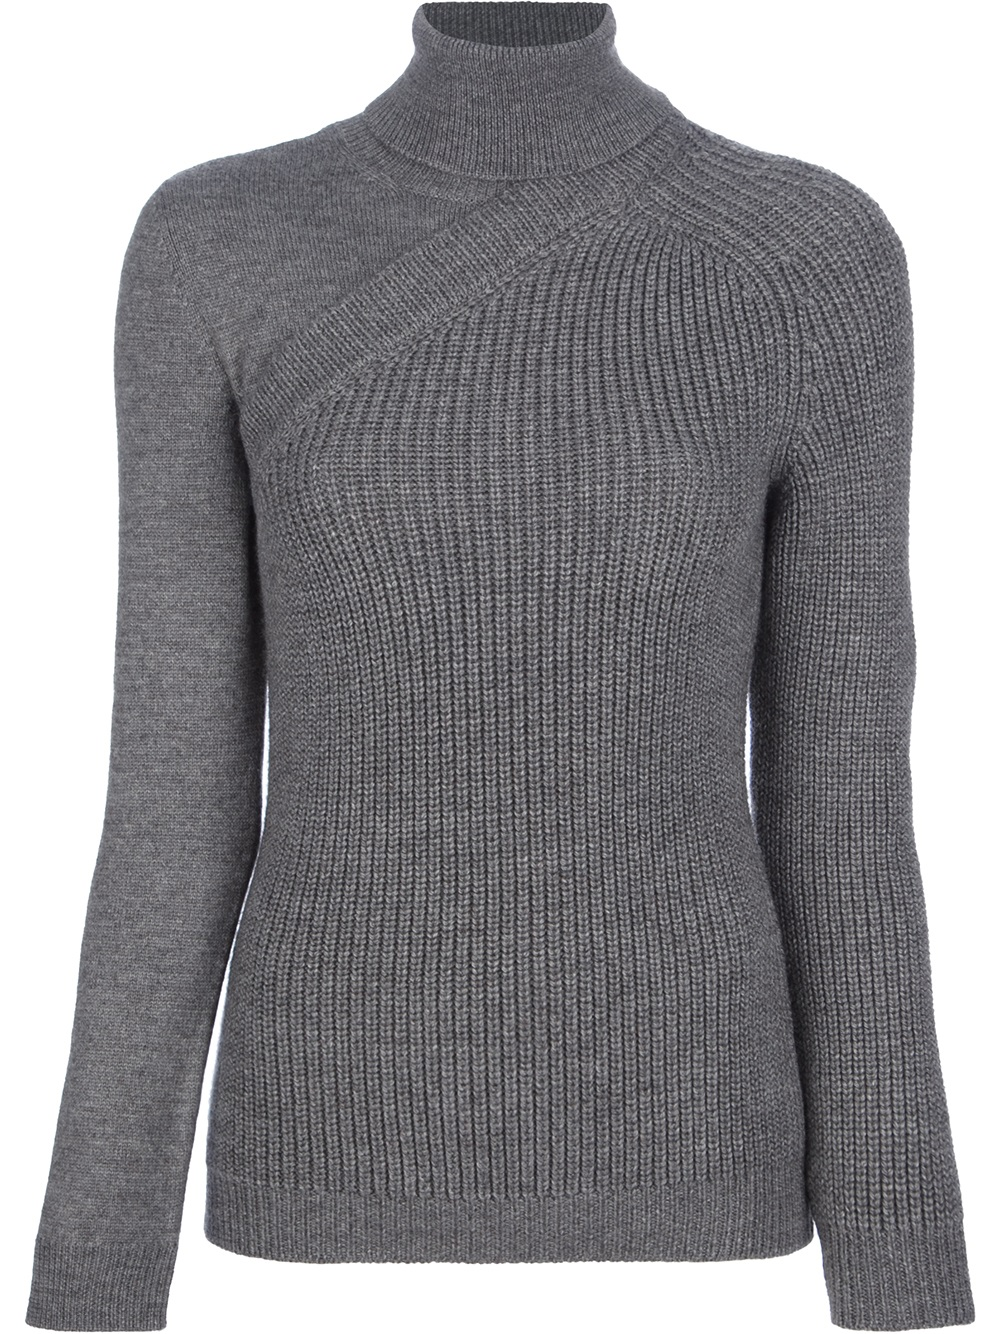 Cedric charlier Roll Neck Ribbed Sweater in Gray | Lyst